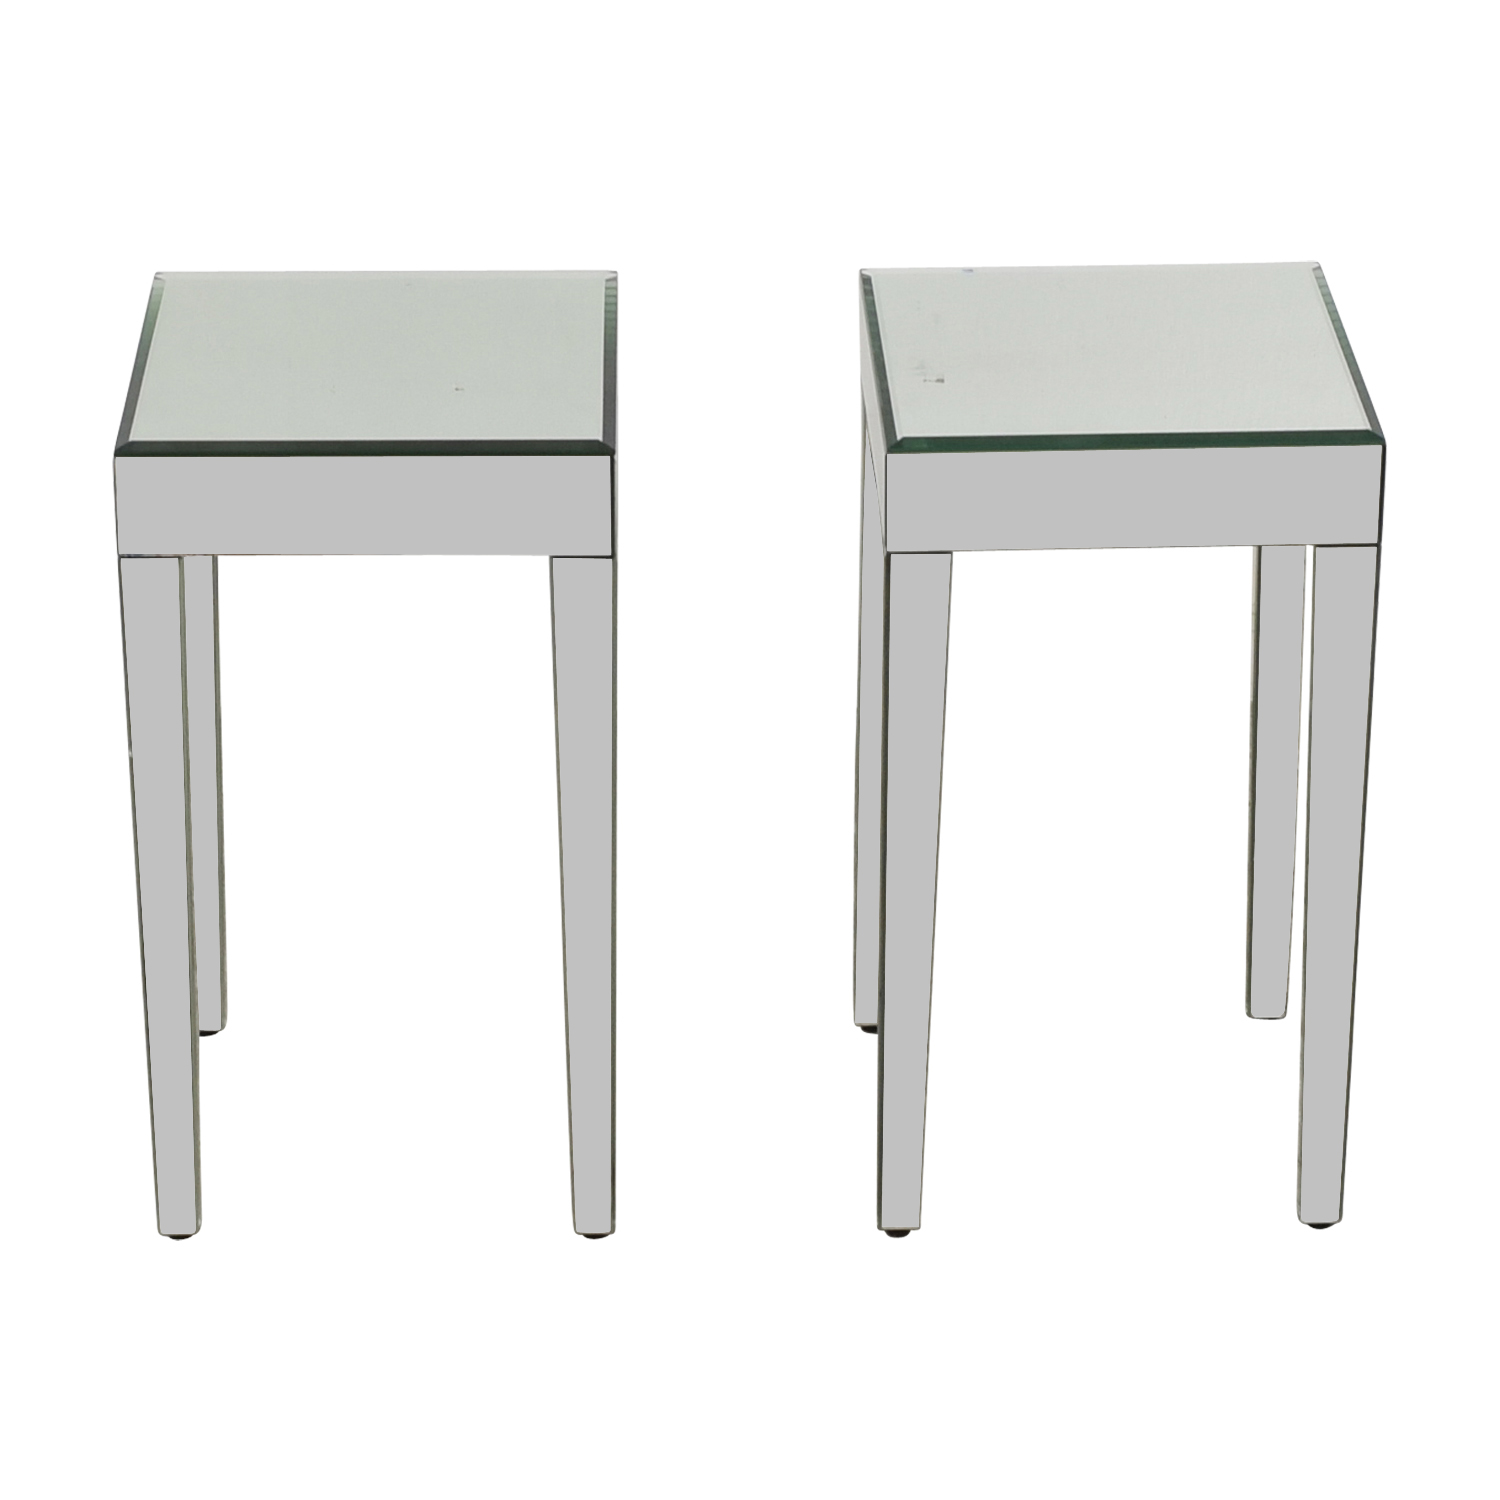 Target Target Mirrored Side Tables price